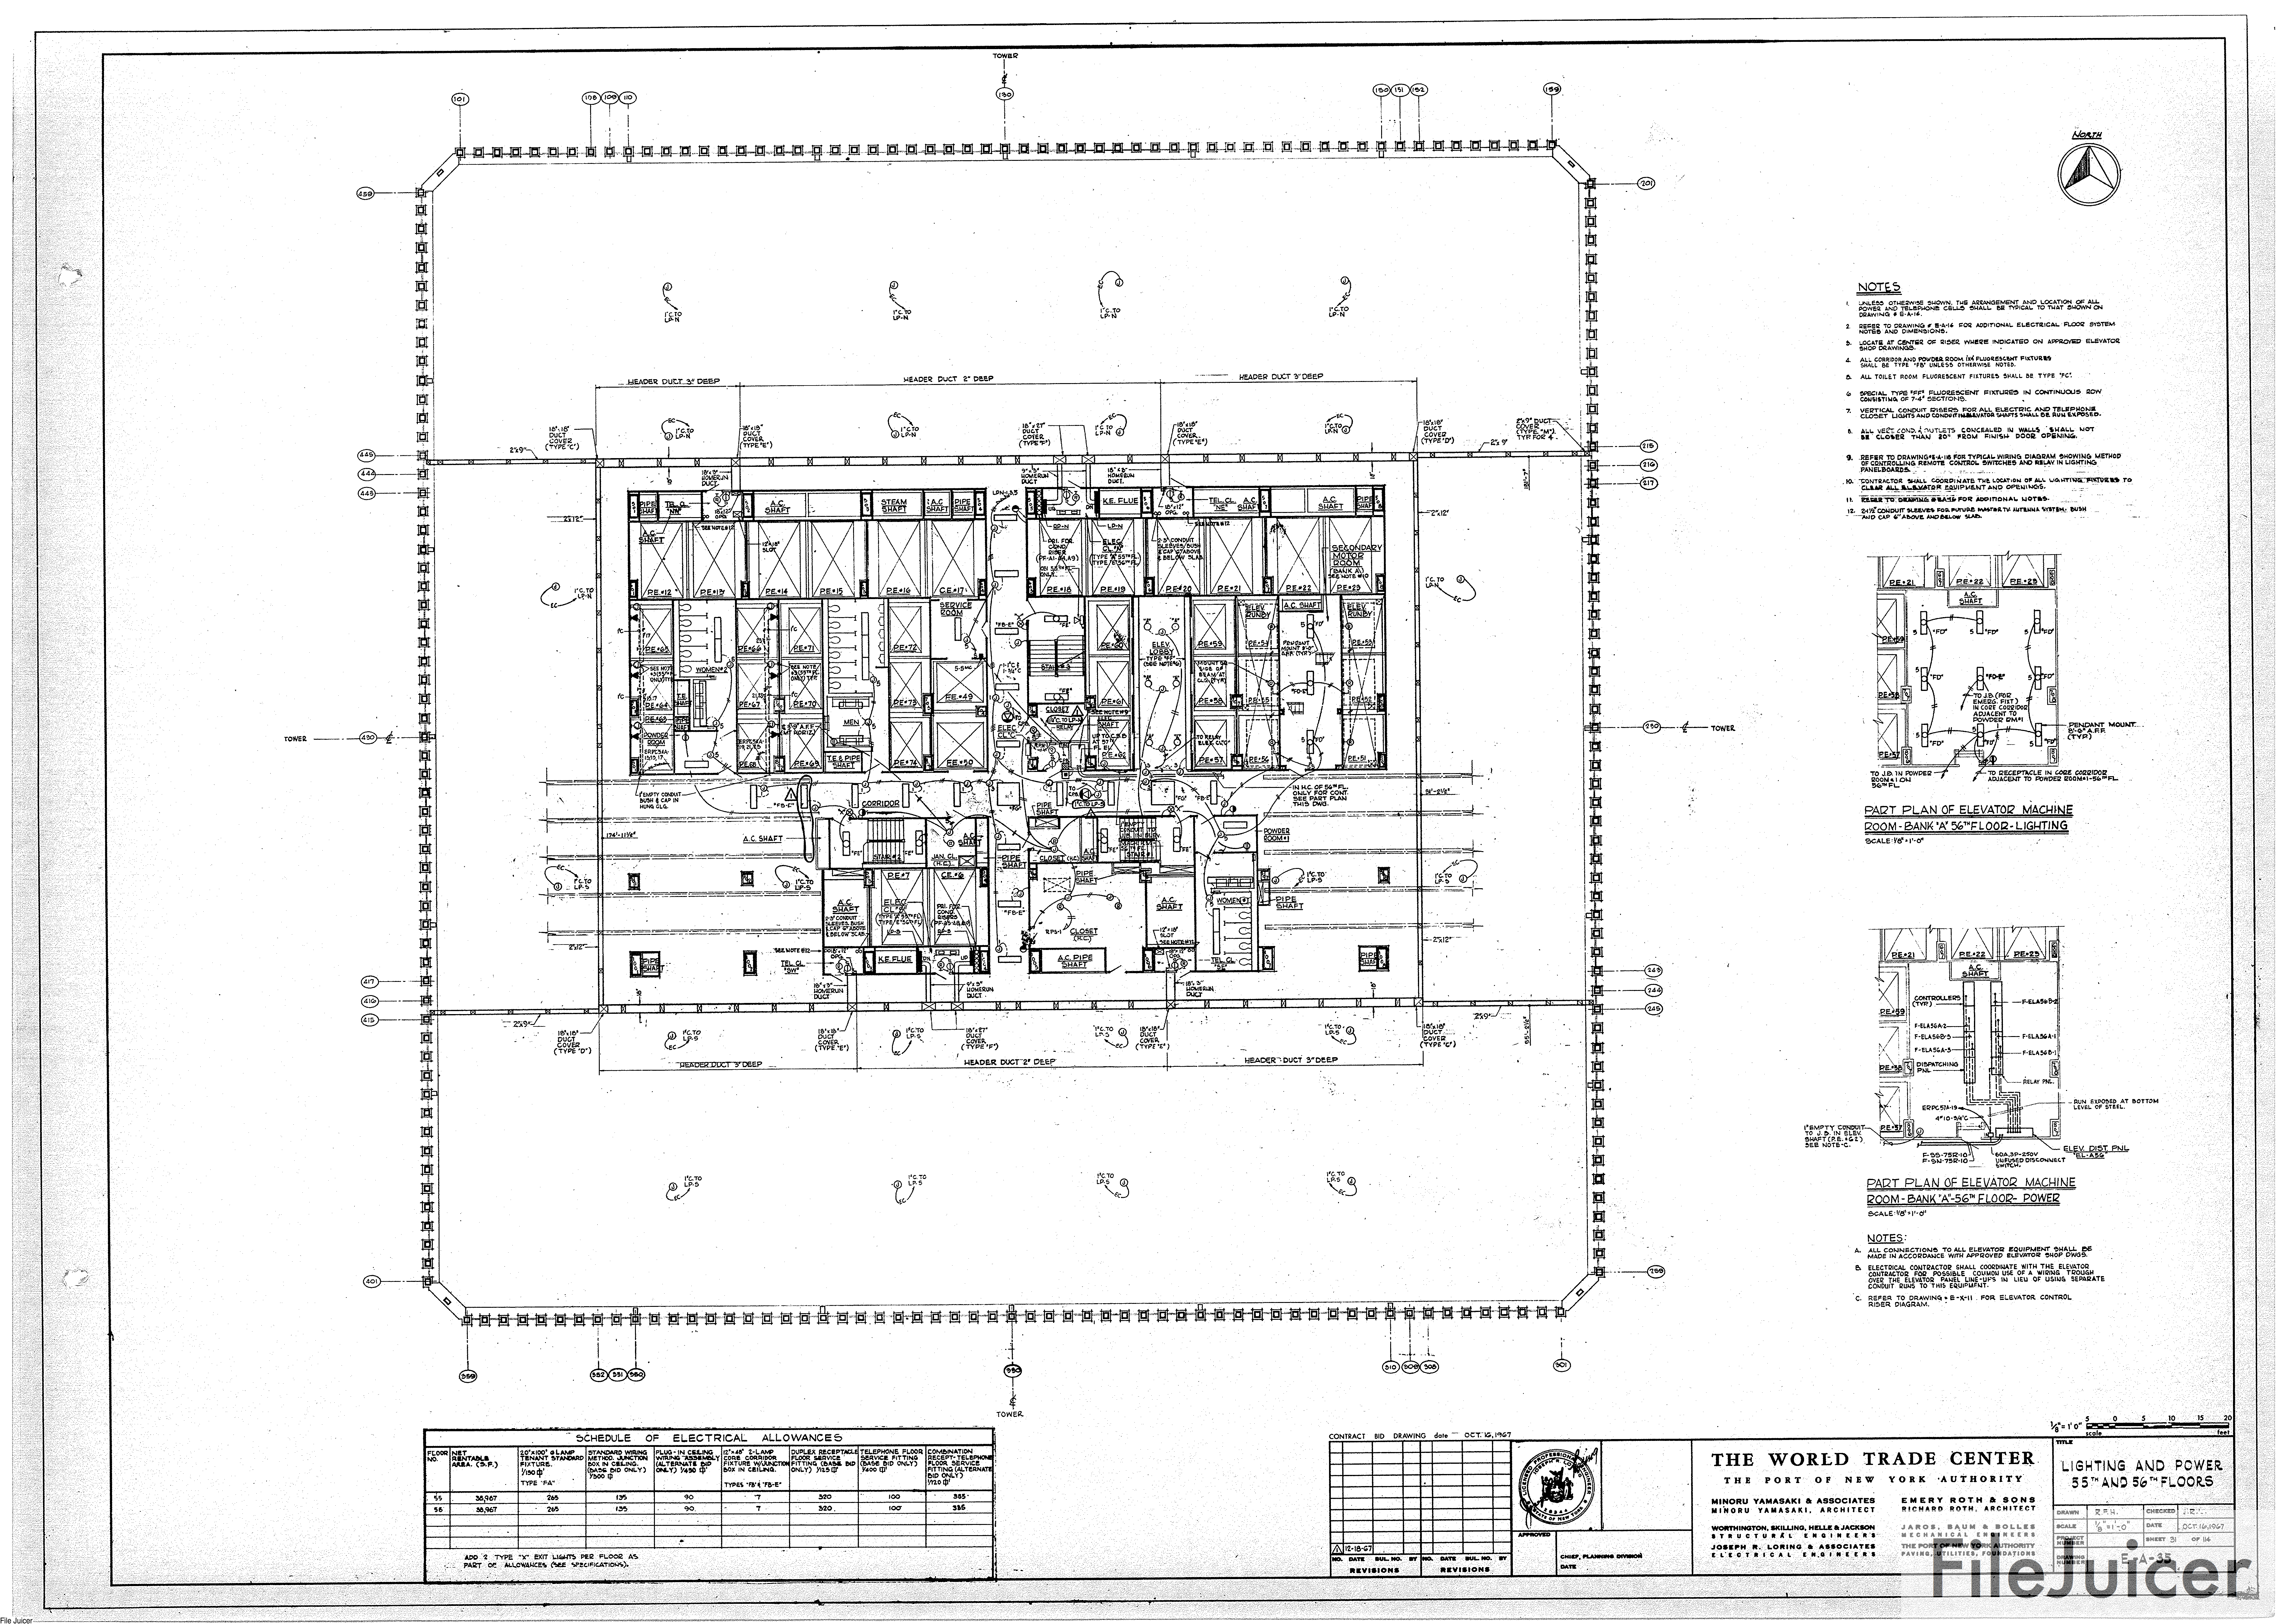 Table Of World Trade Center Tower A Drawings Lighting Control Panel Schematic Diagram Power 55th 56thfloors